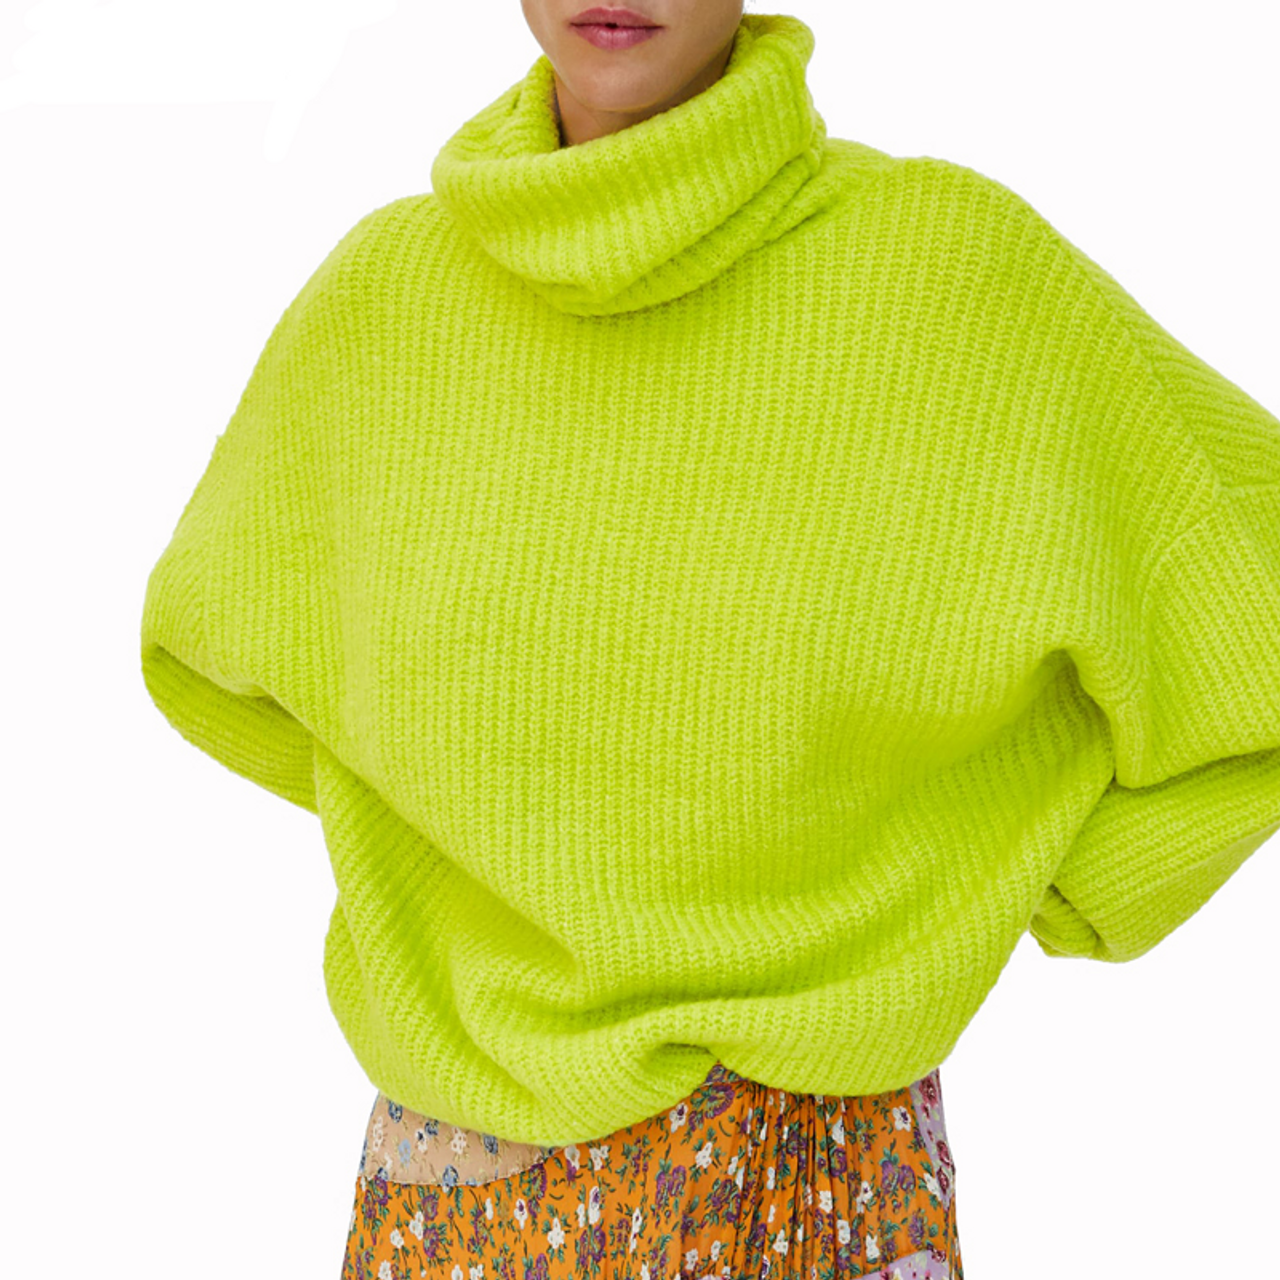 08dde564007 2018 Fashion Fluorescent Neon Color Turtleneck Warm Sweater Women Casual  Long Sleeve Loose Woman Pullover Knit